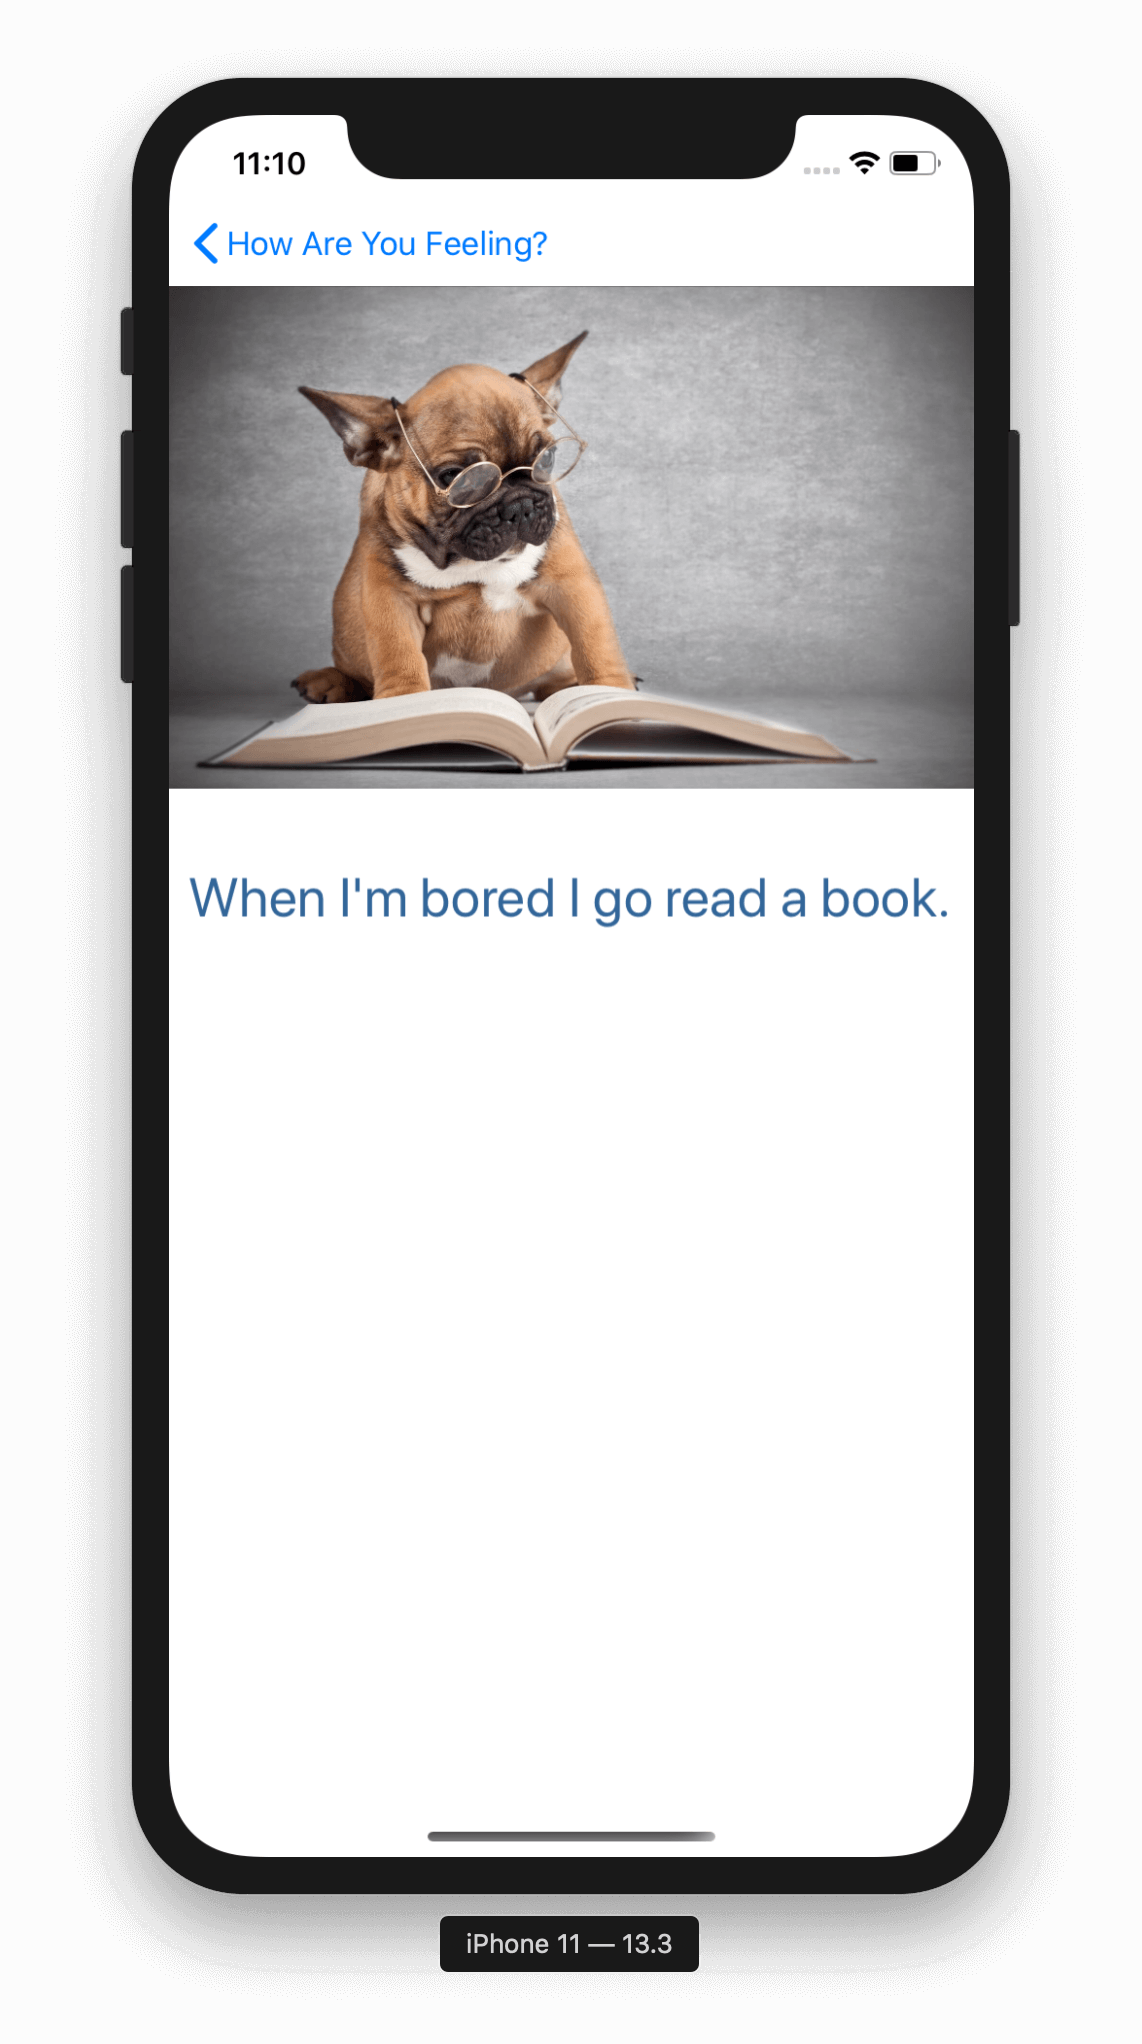 Image of iPhone screen with a photo of a dog with glasses looking at a book. Underneath is the caption: When I'm bored, I go read a book.